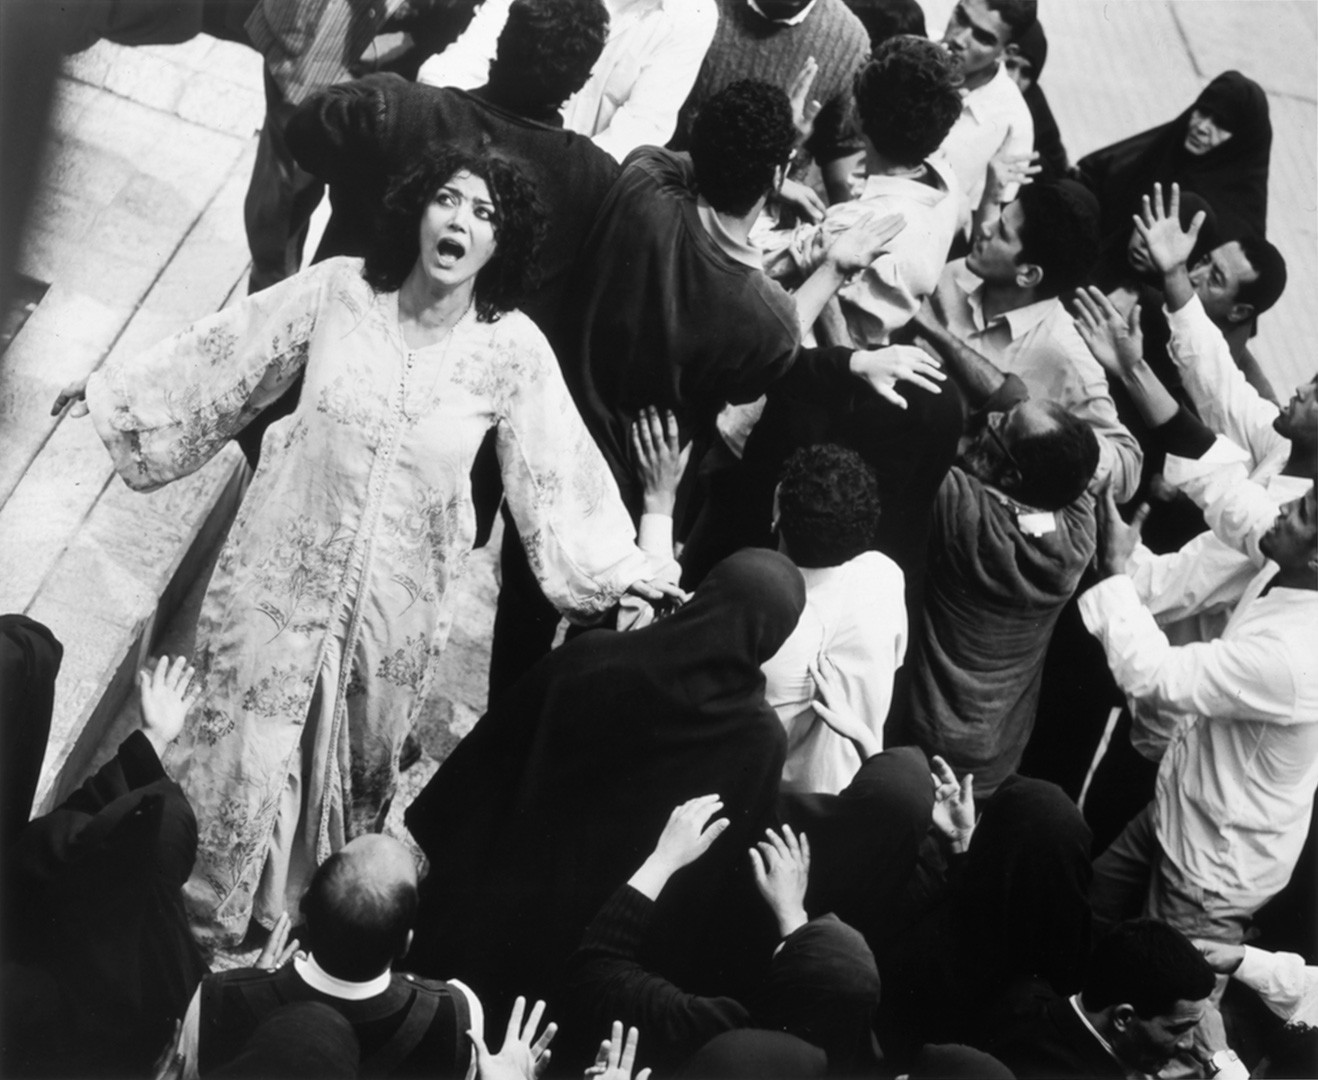 In the midst of an arguing crowd in traditional Iranian dress, a woman without a veil wails, arms out to her sides.